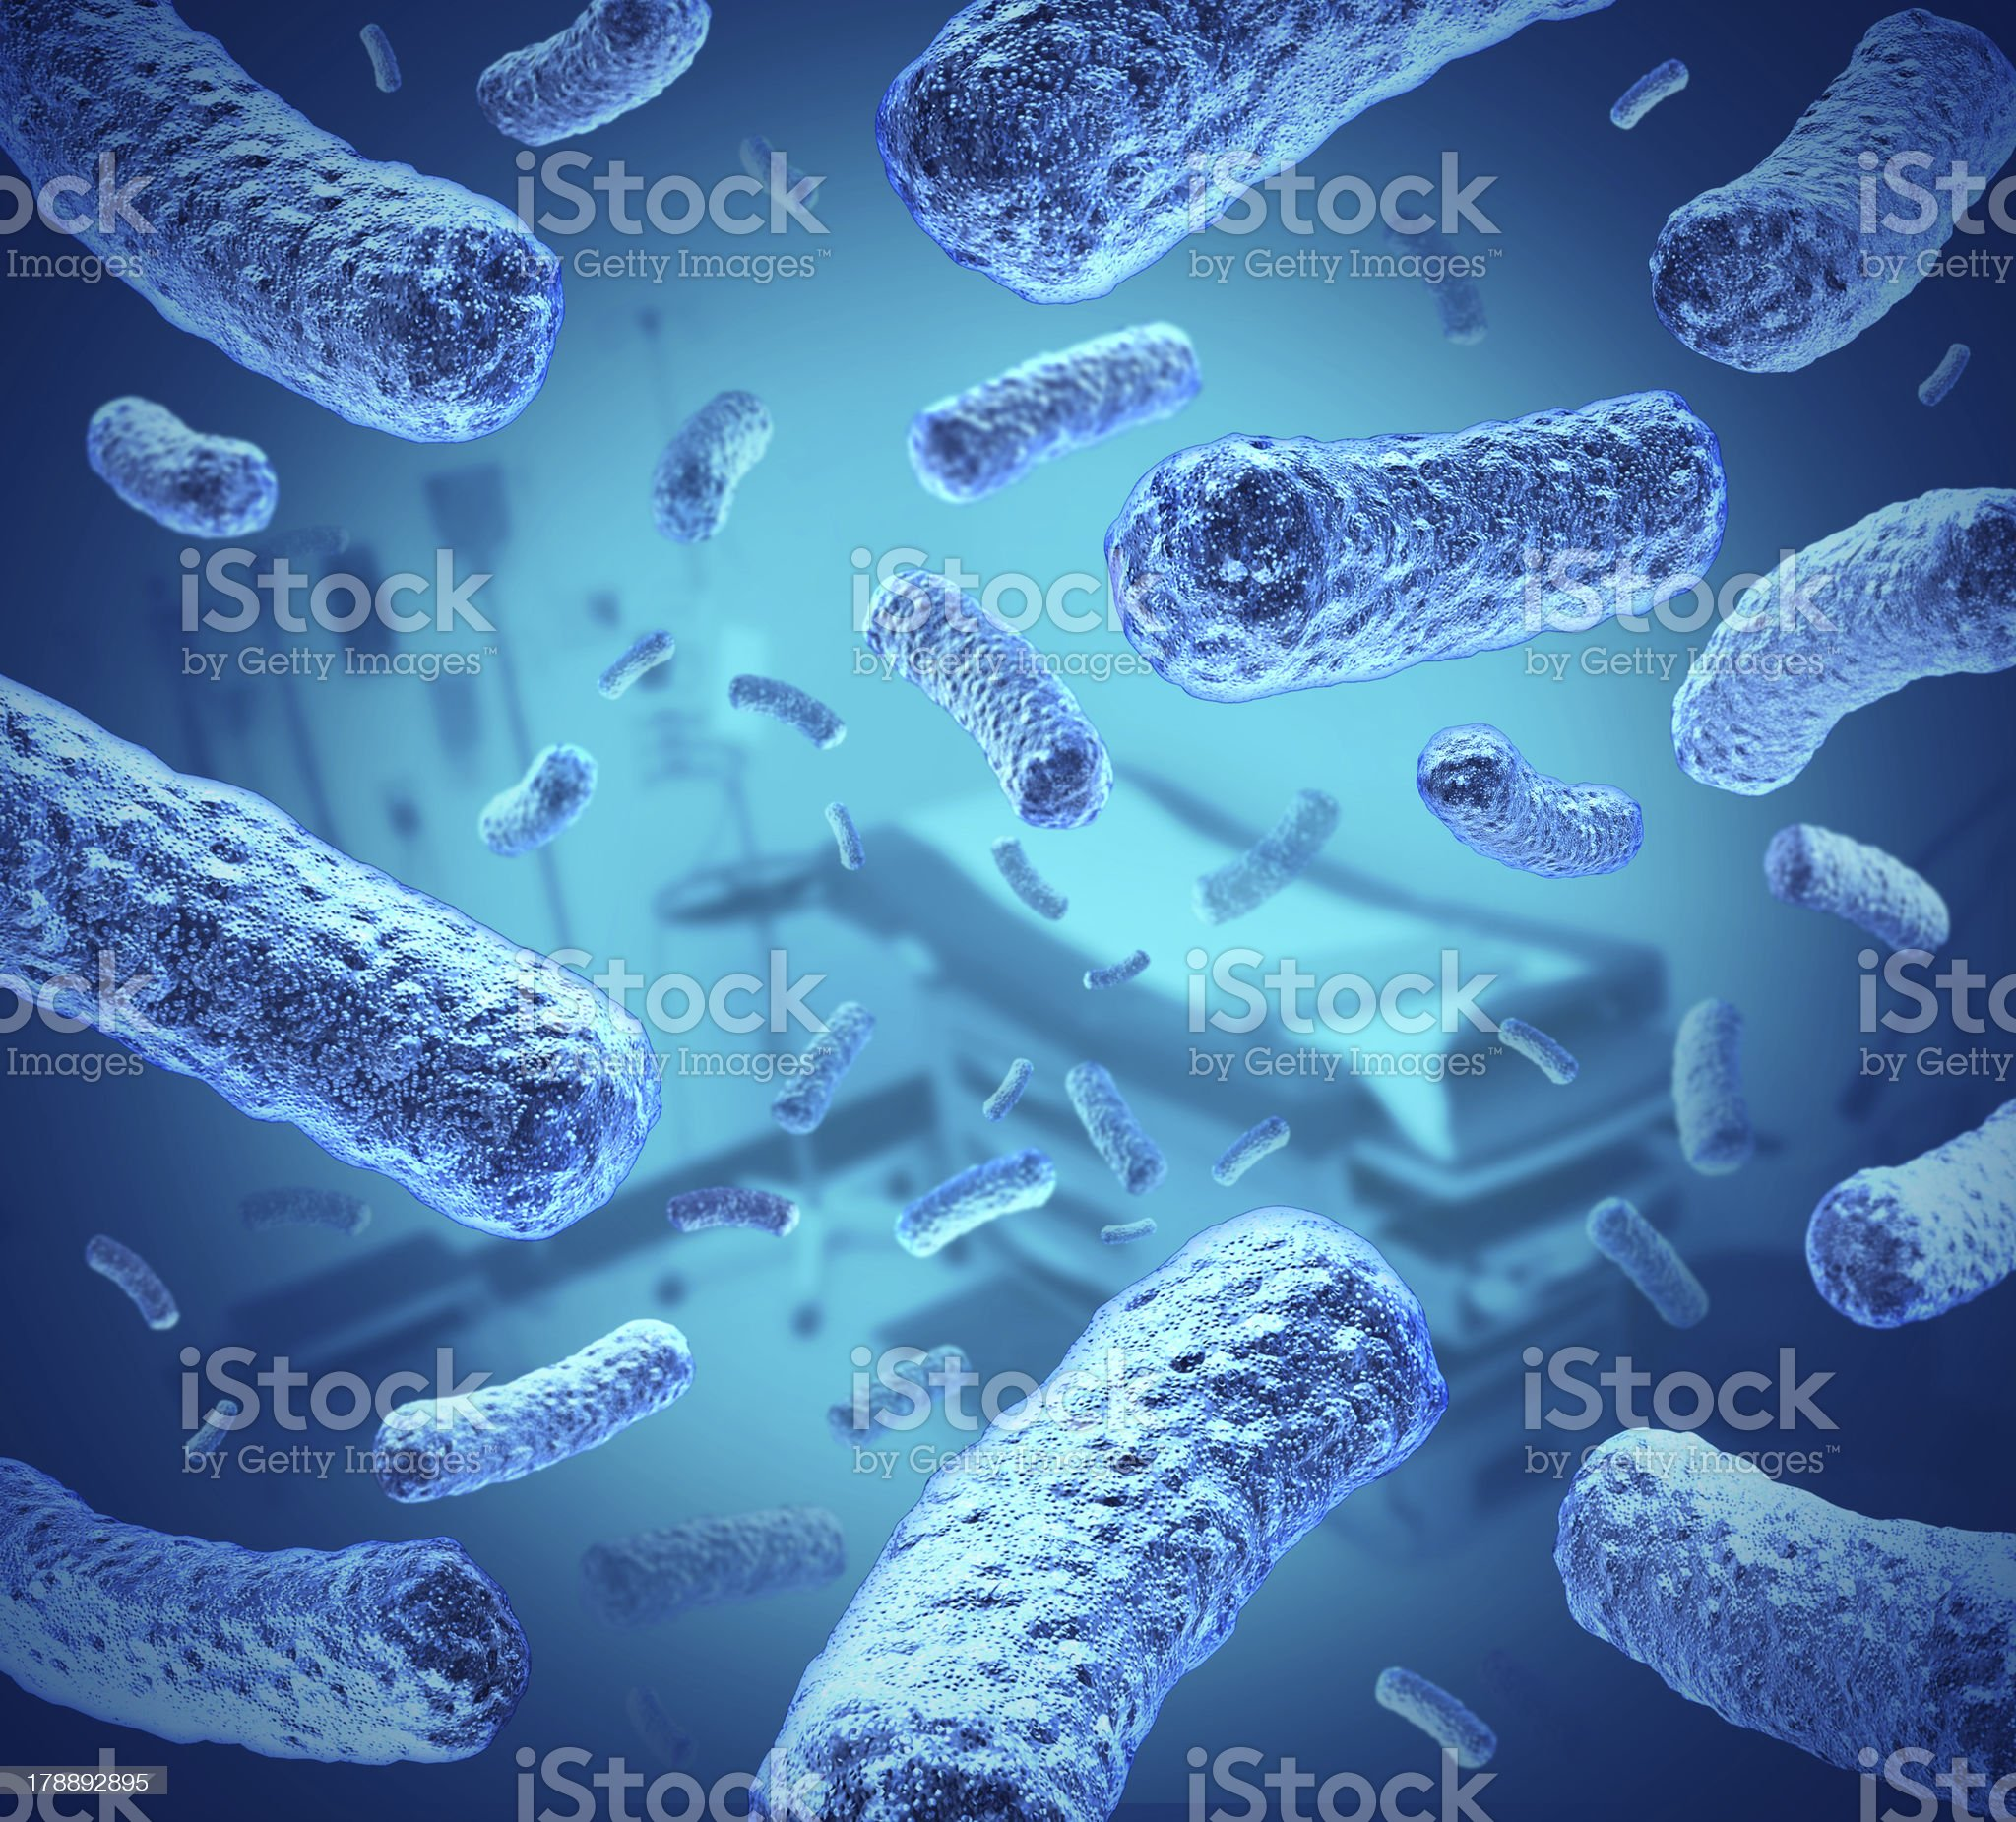 Hospital Germs royalty-free stock photo